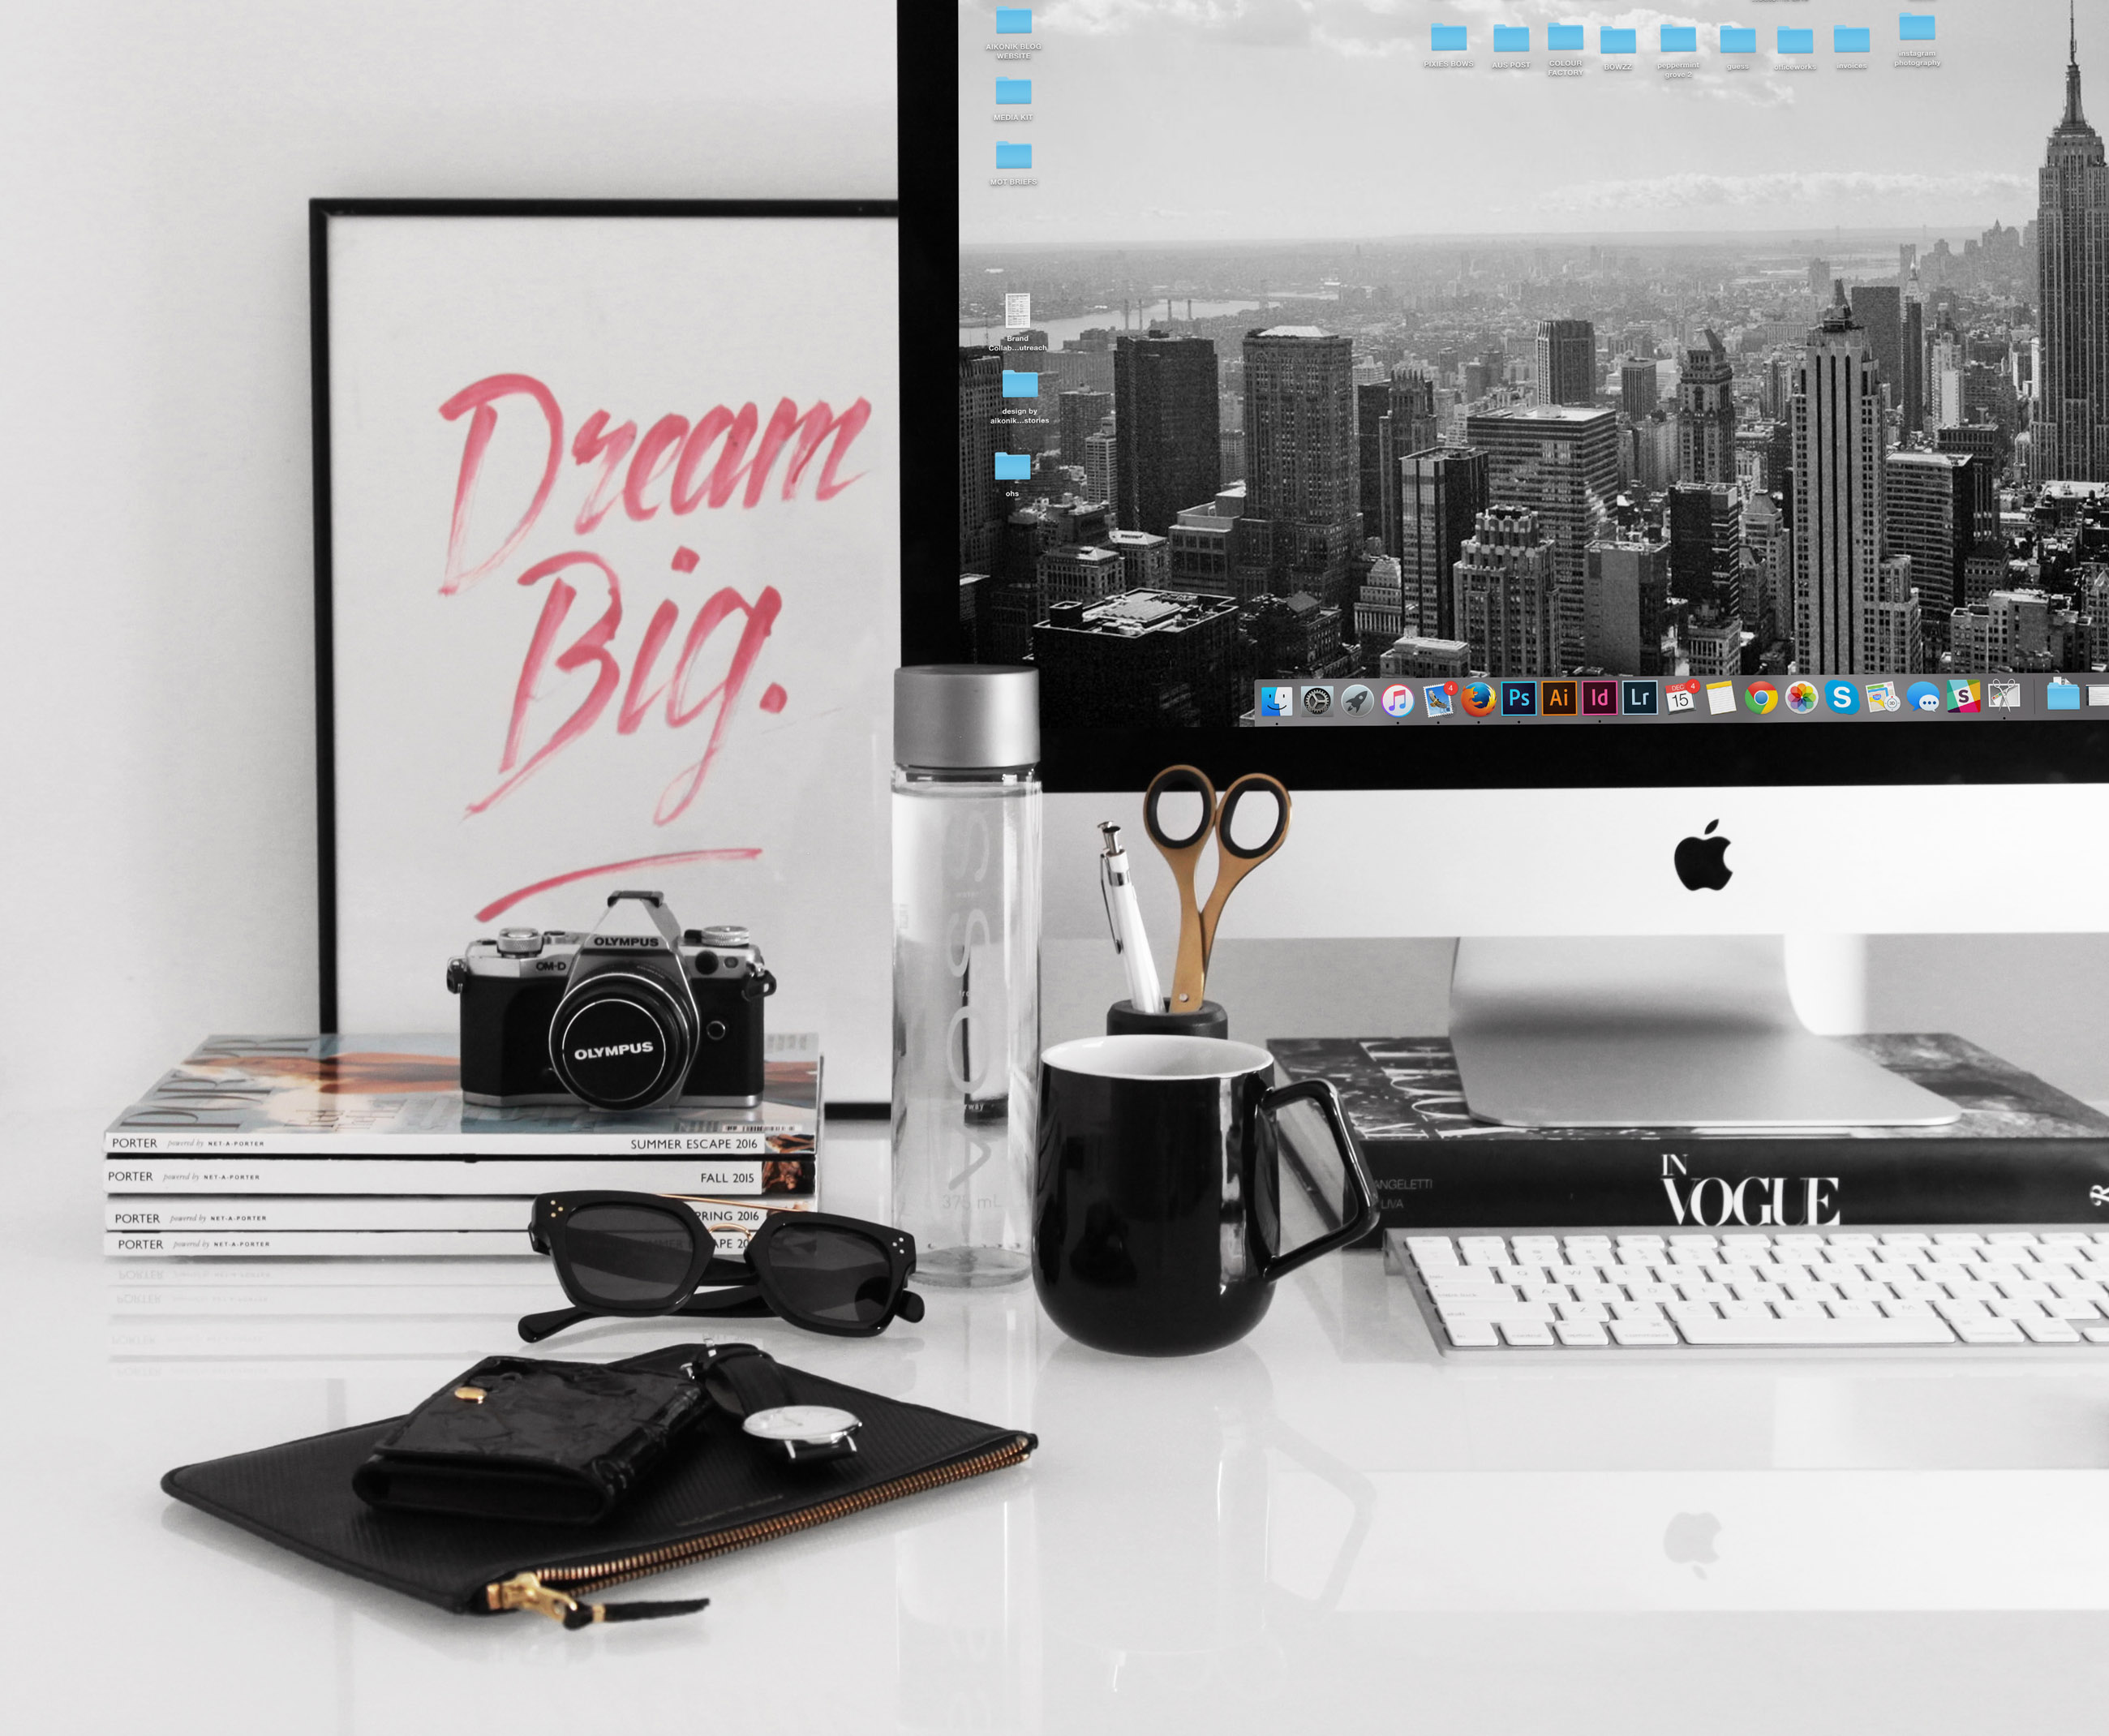 organise your workspace - design by aikonik 1